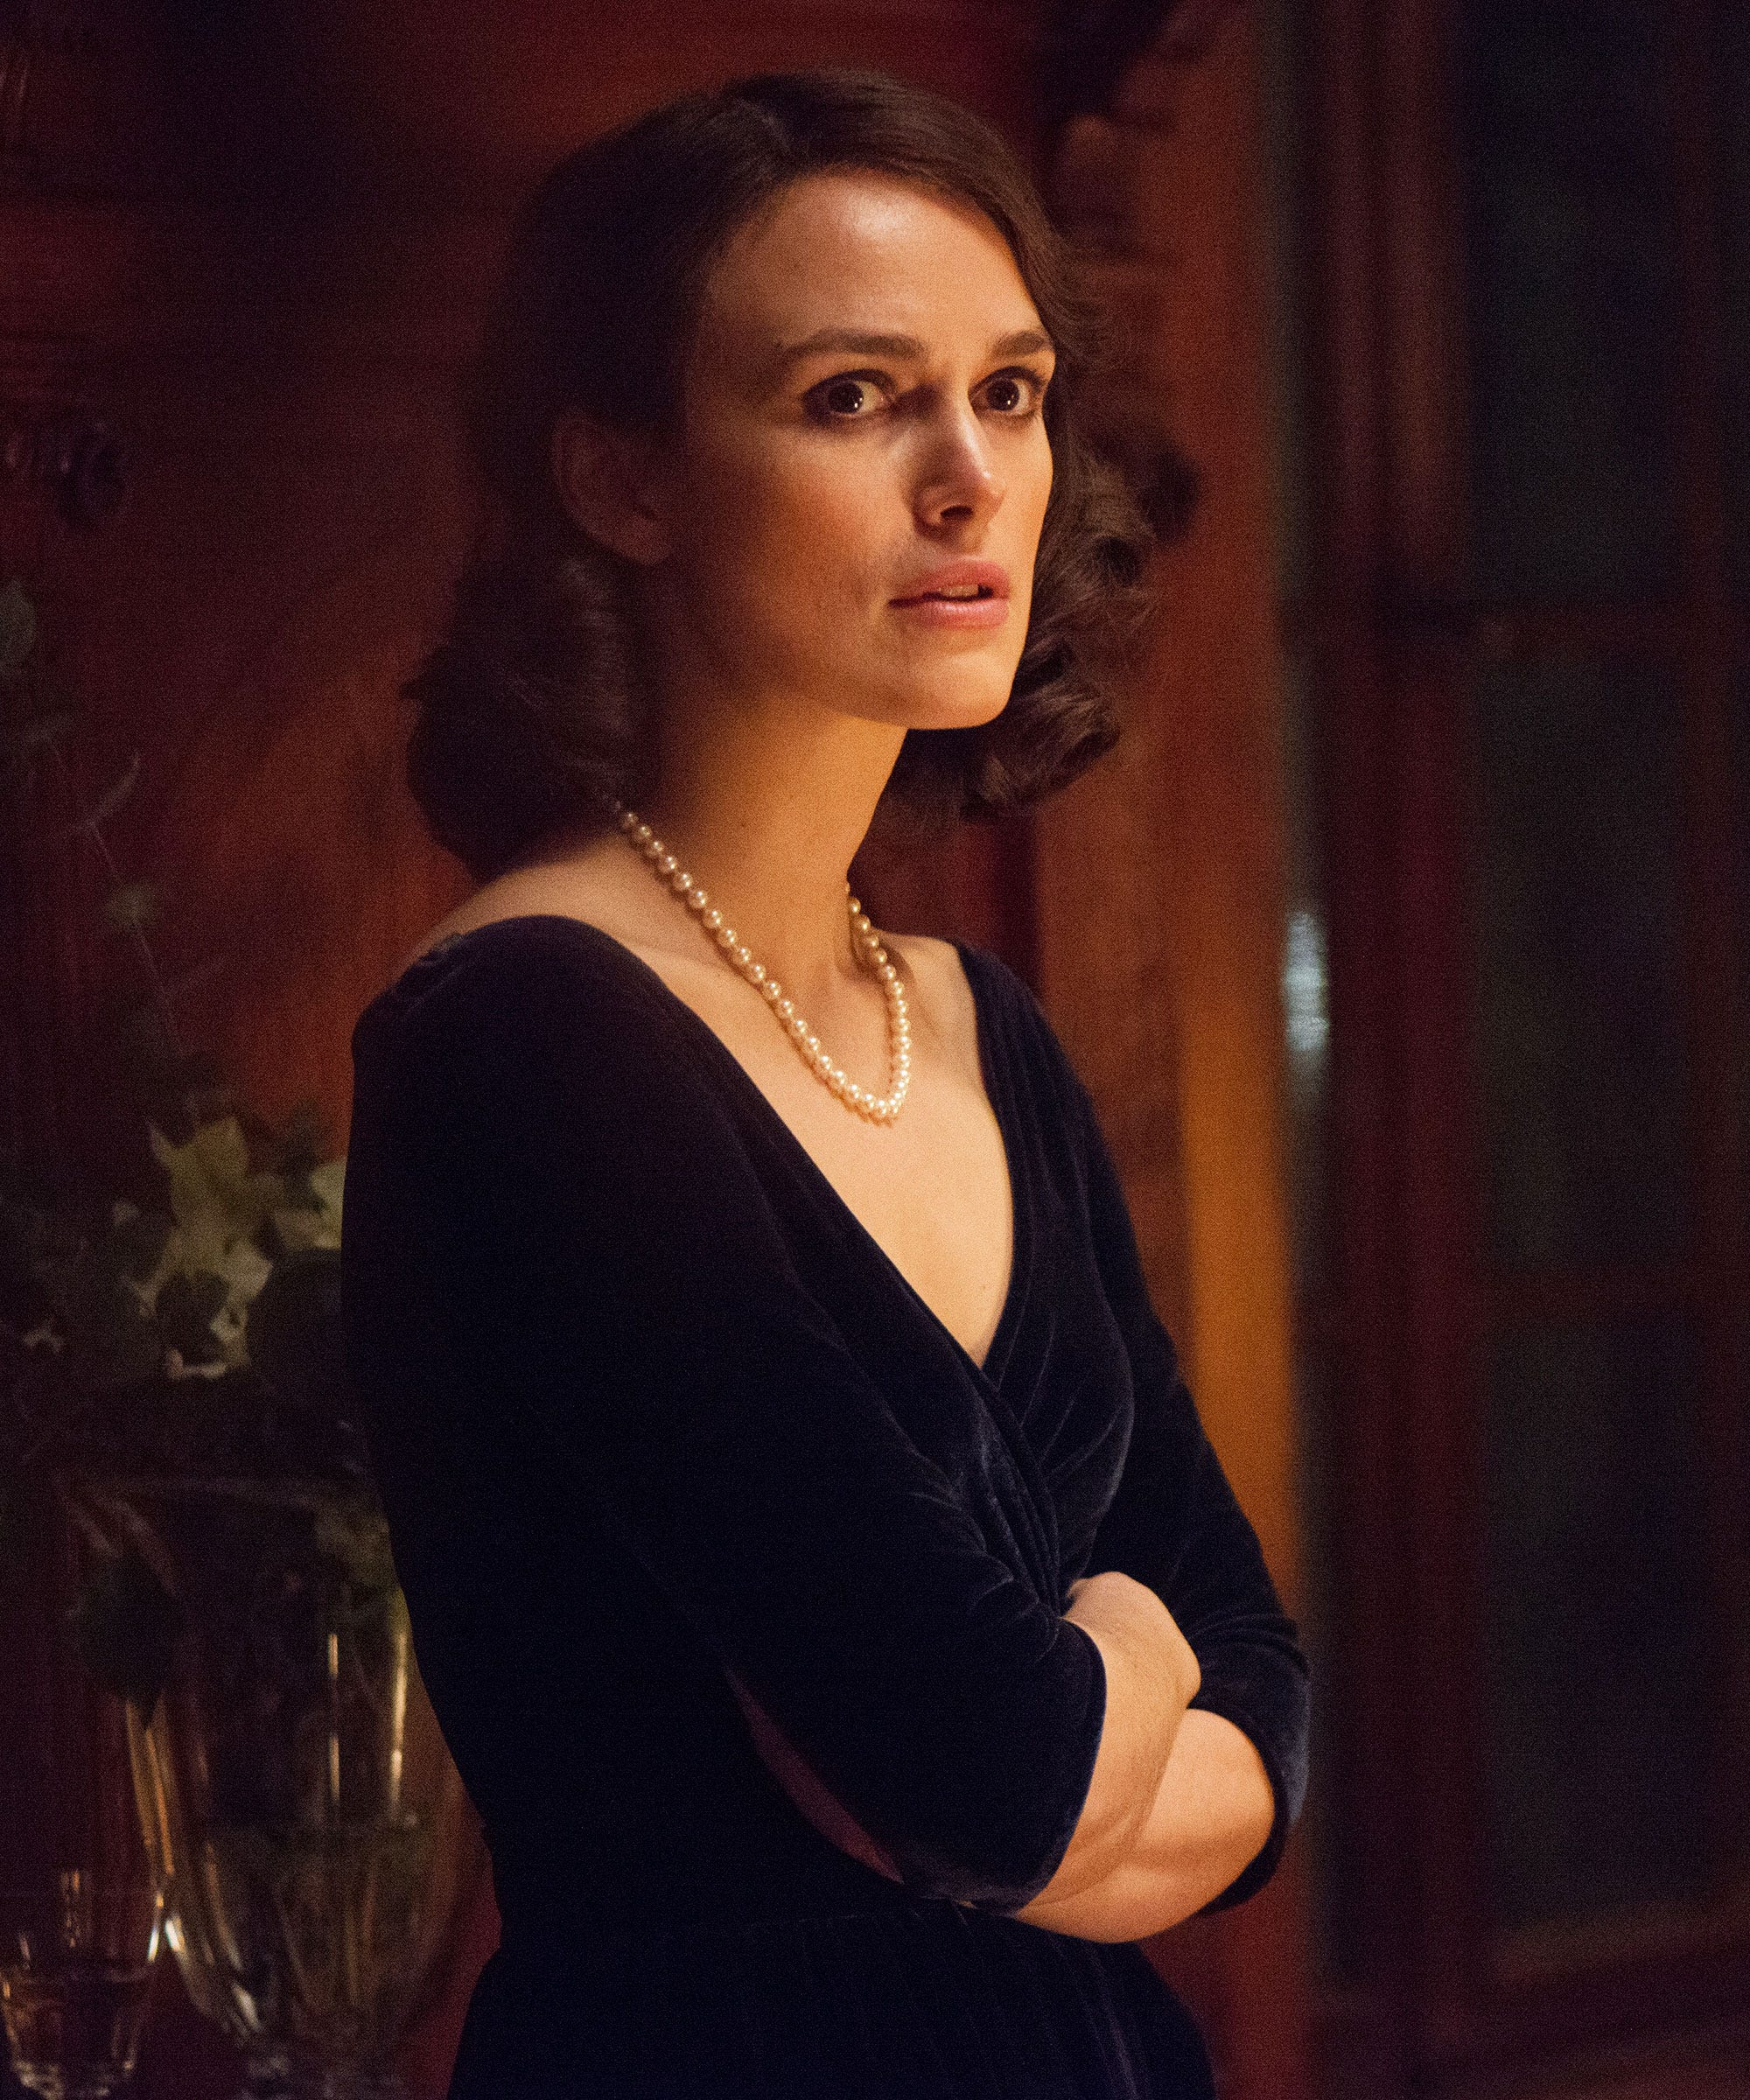 Keira Knightley on acting in the Aftermath of motherhood